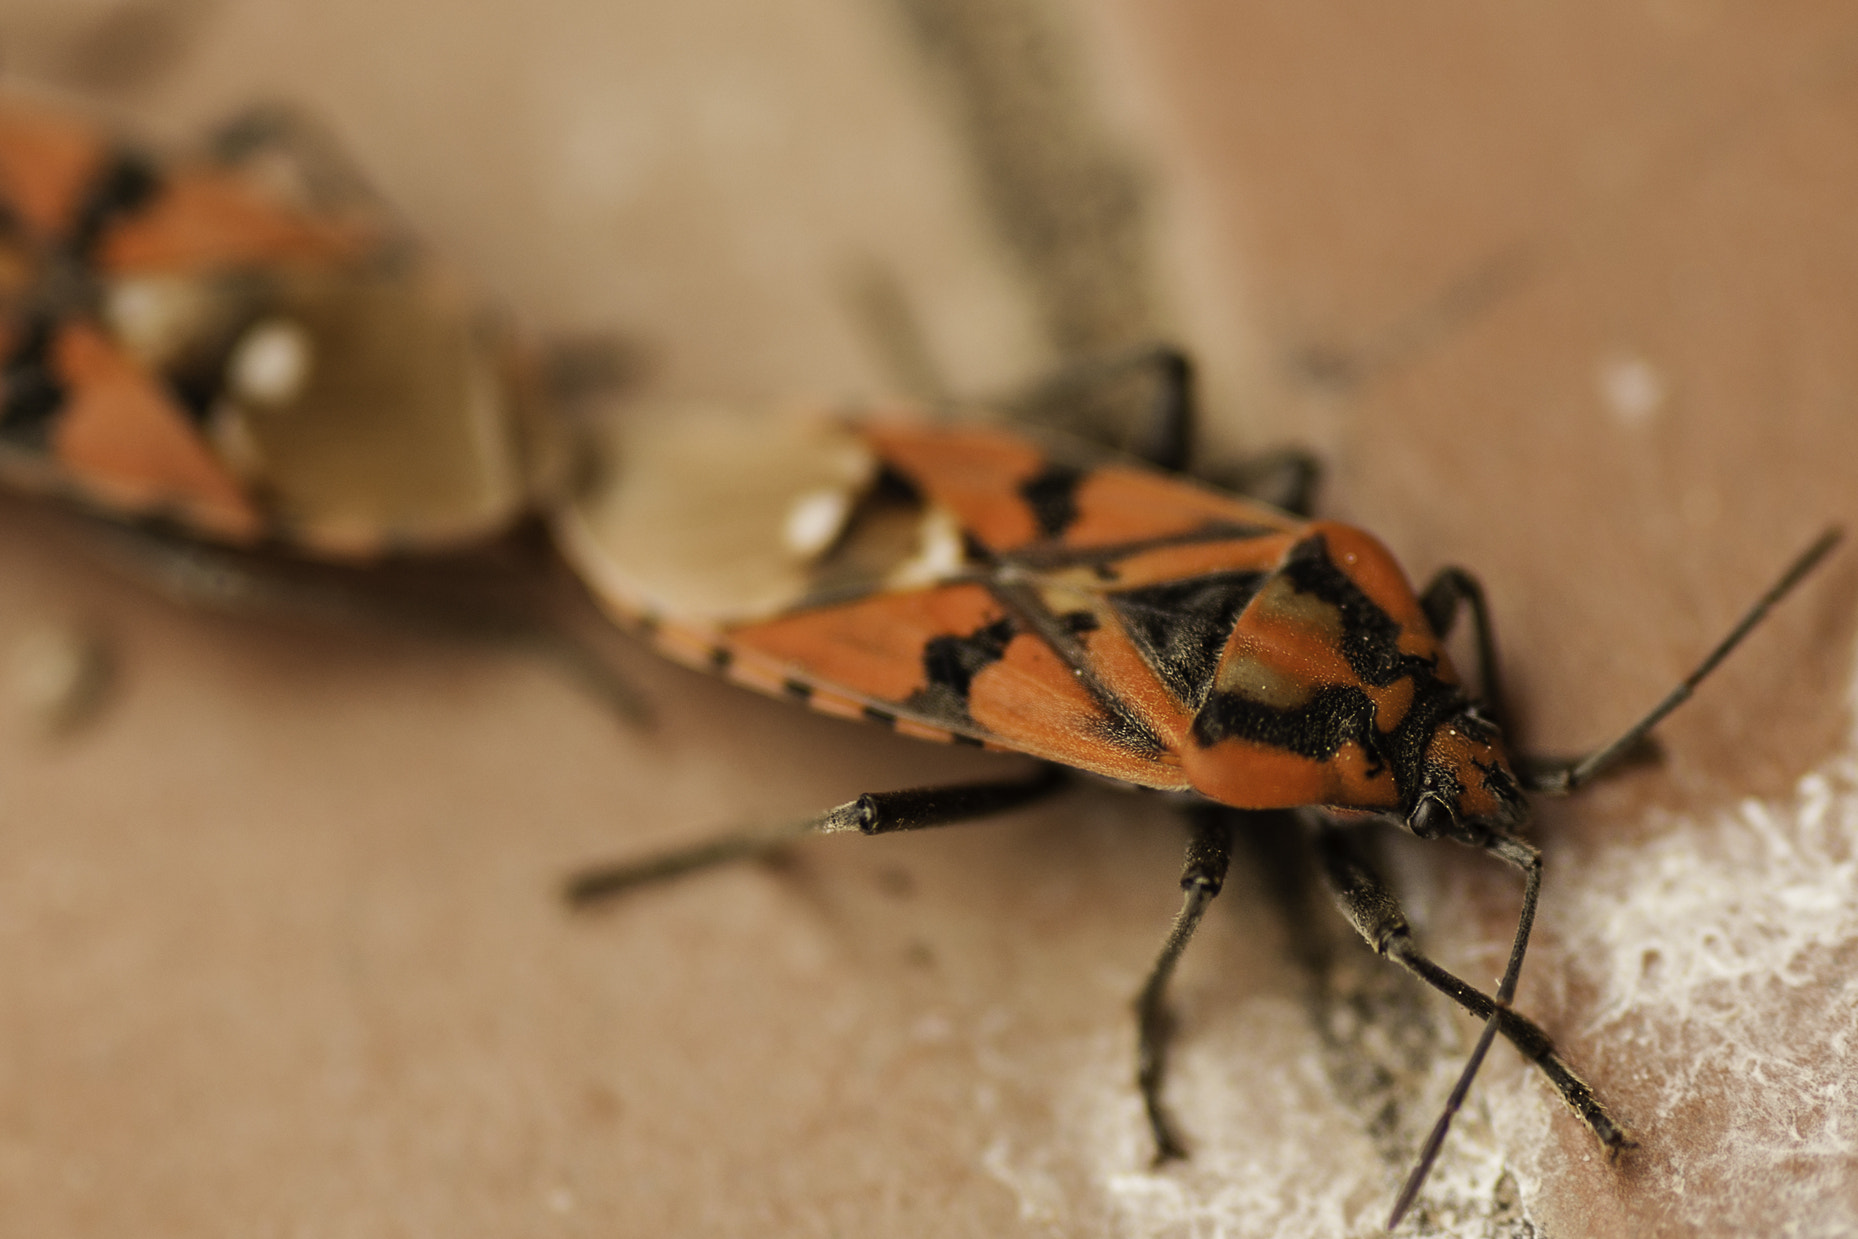 Photograph Pyrrhocoris apterus... in love by Daniele Sangiorgio on 500px